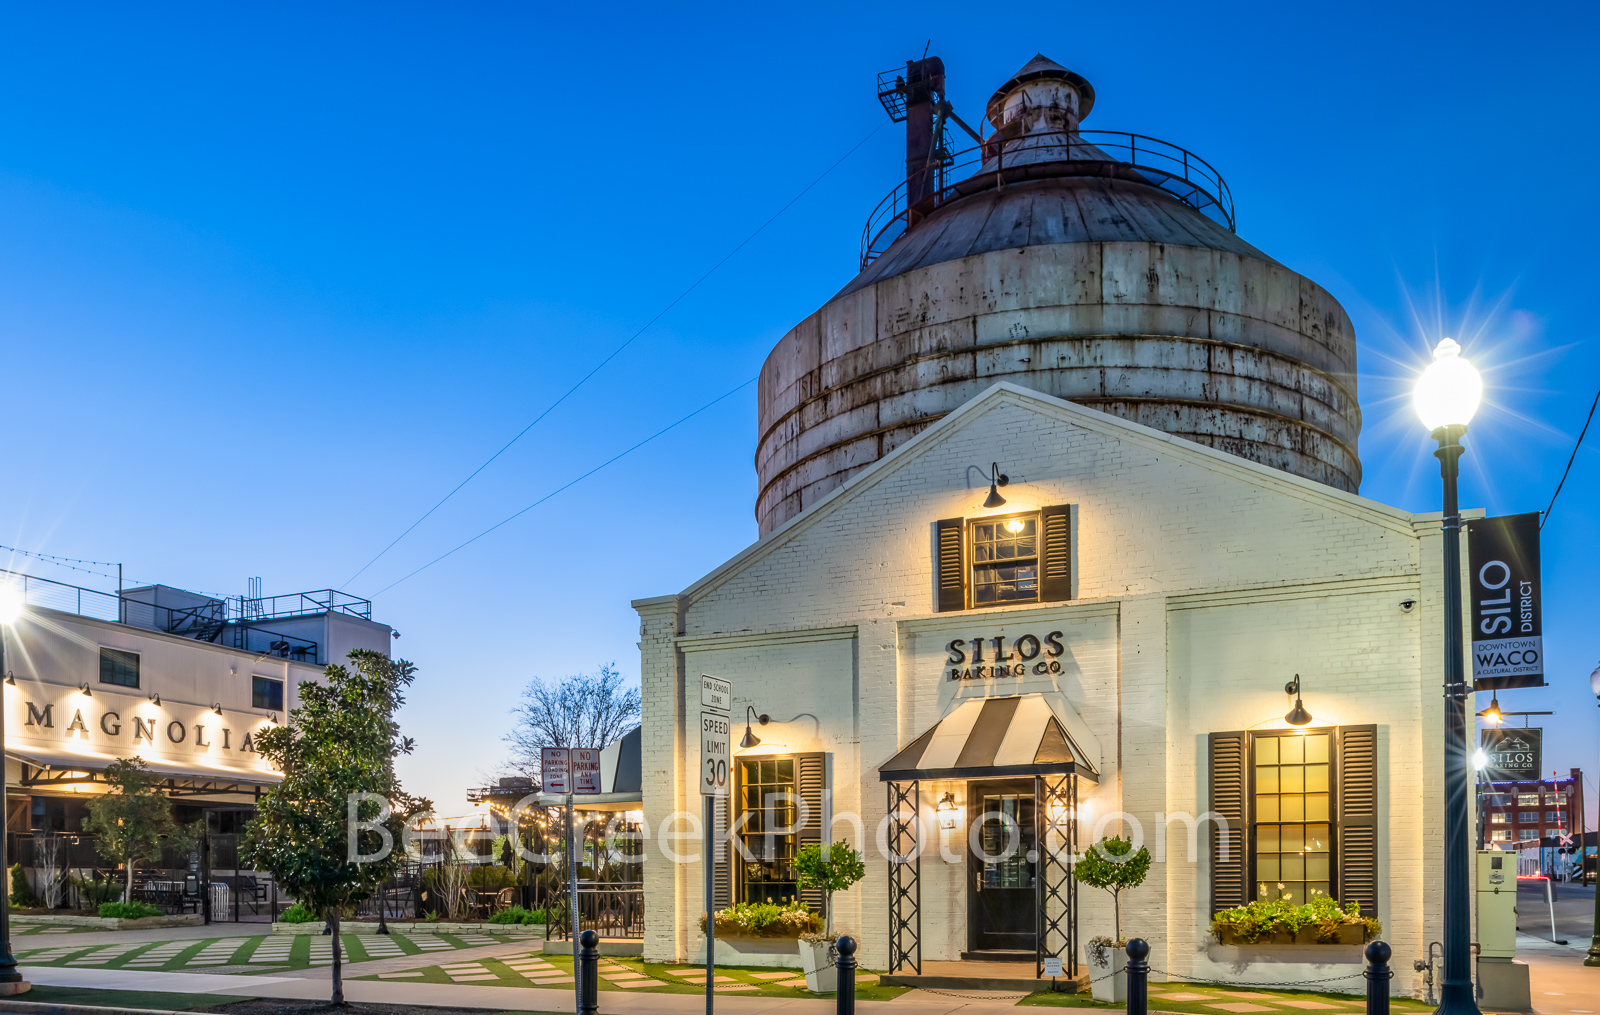 Magnolia Market with Silos Twilight - We capture this image of the Magnolia Market with the two silos in the background right...